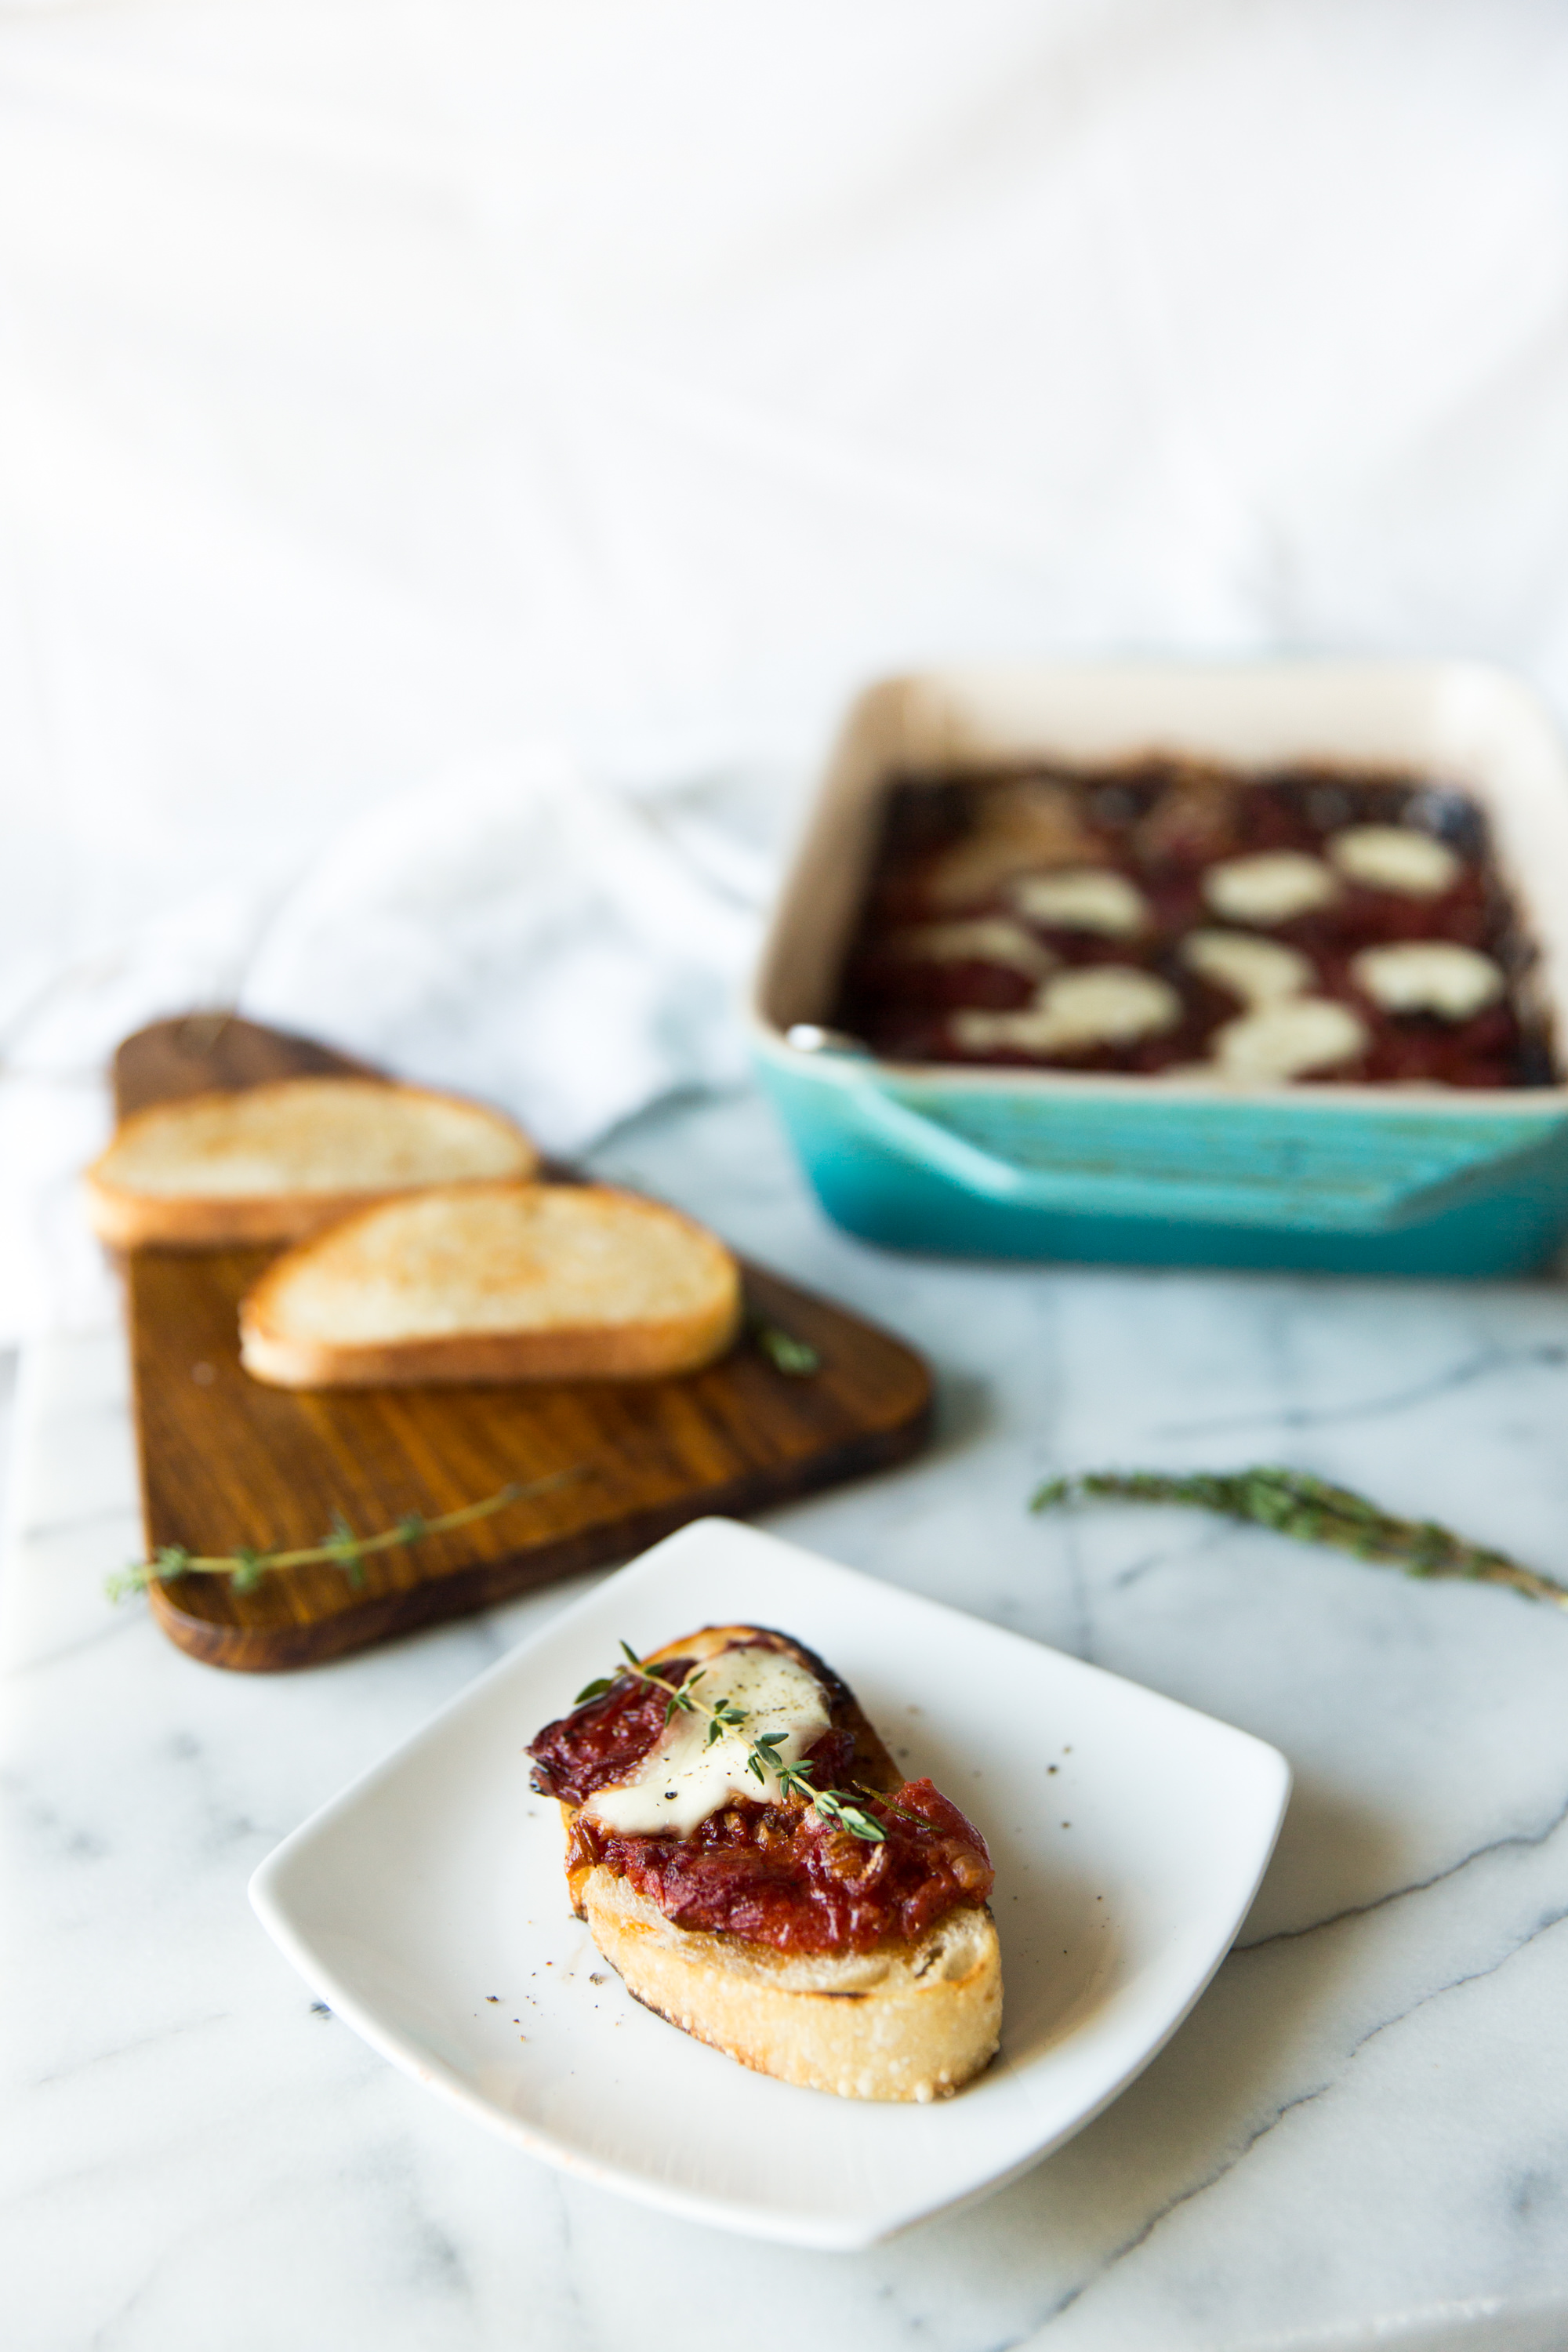 Slow Roasted Tomato Tartines